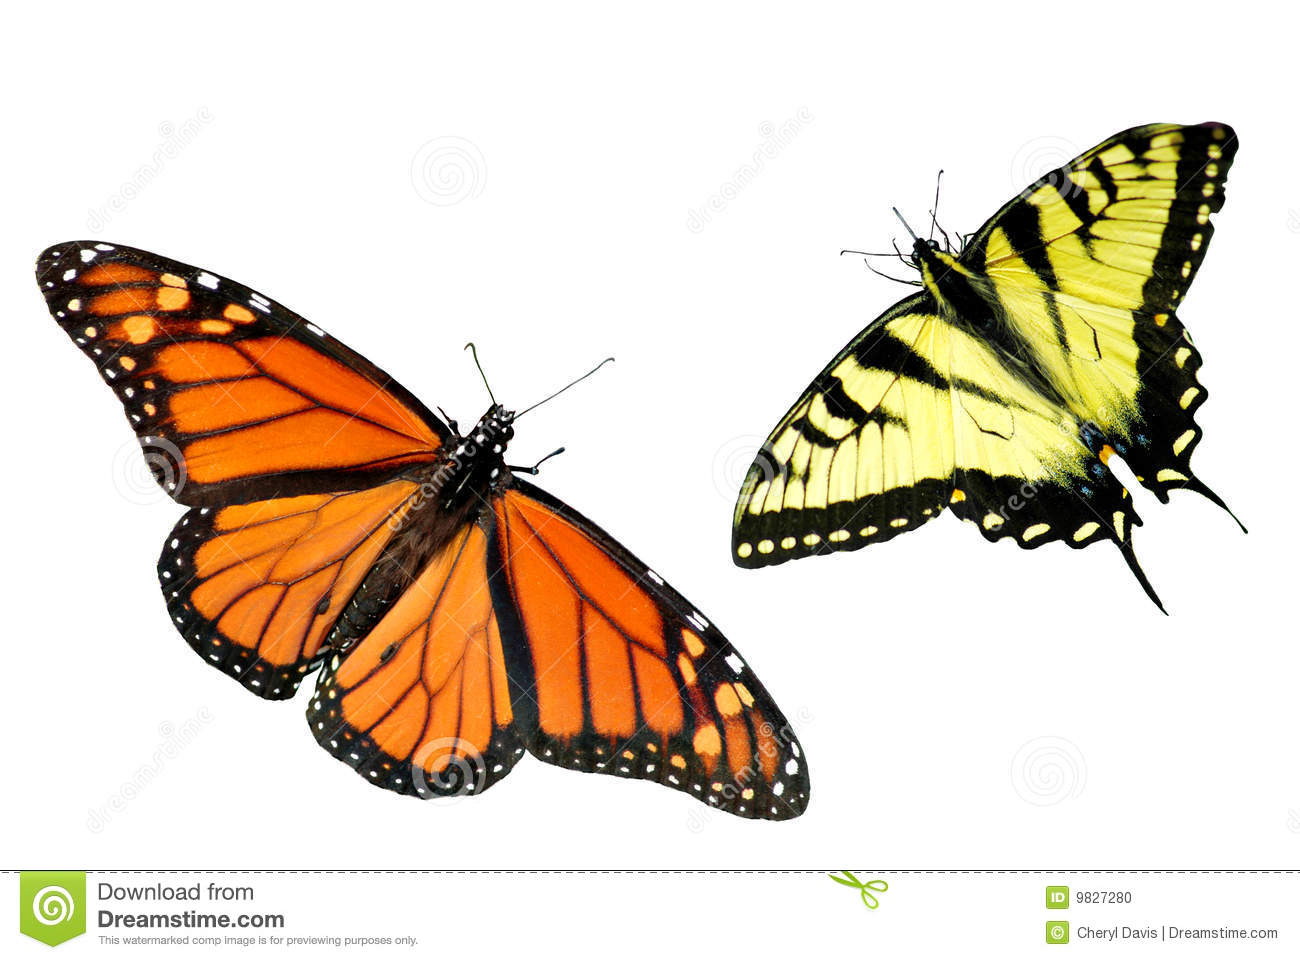 A tiger and butterfly clipart.